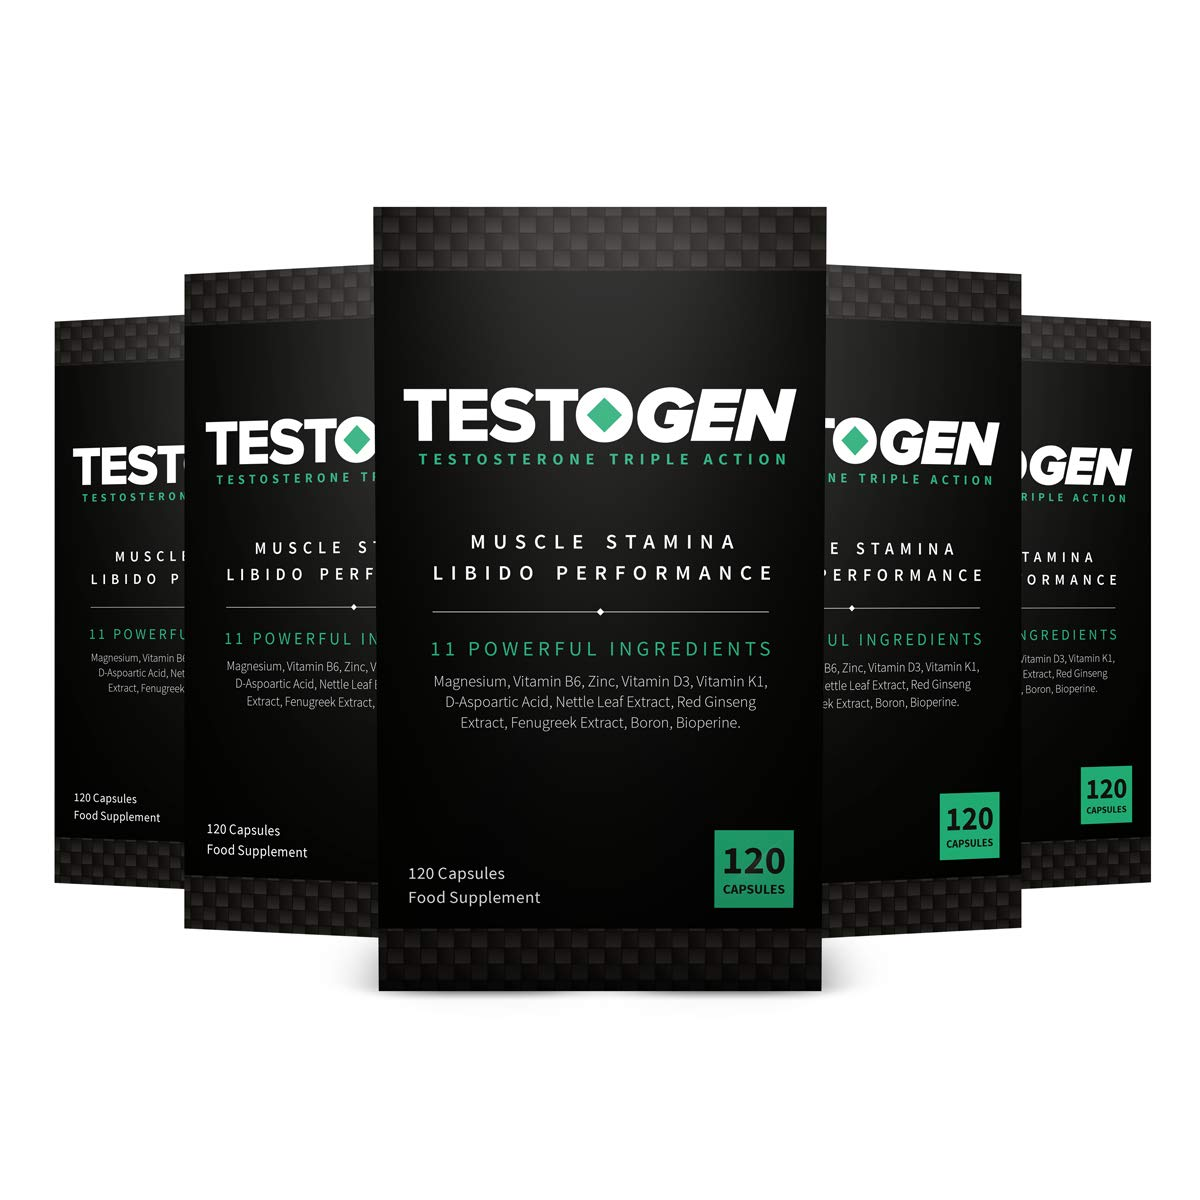 5-Pack TestoGen Triple-Action Testosterone Booster with Powerful Natural Ingredients, Helps Improve Stamina, Strength and Energy (120 Capsules)